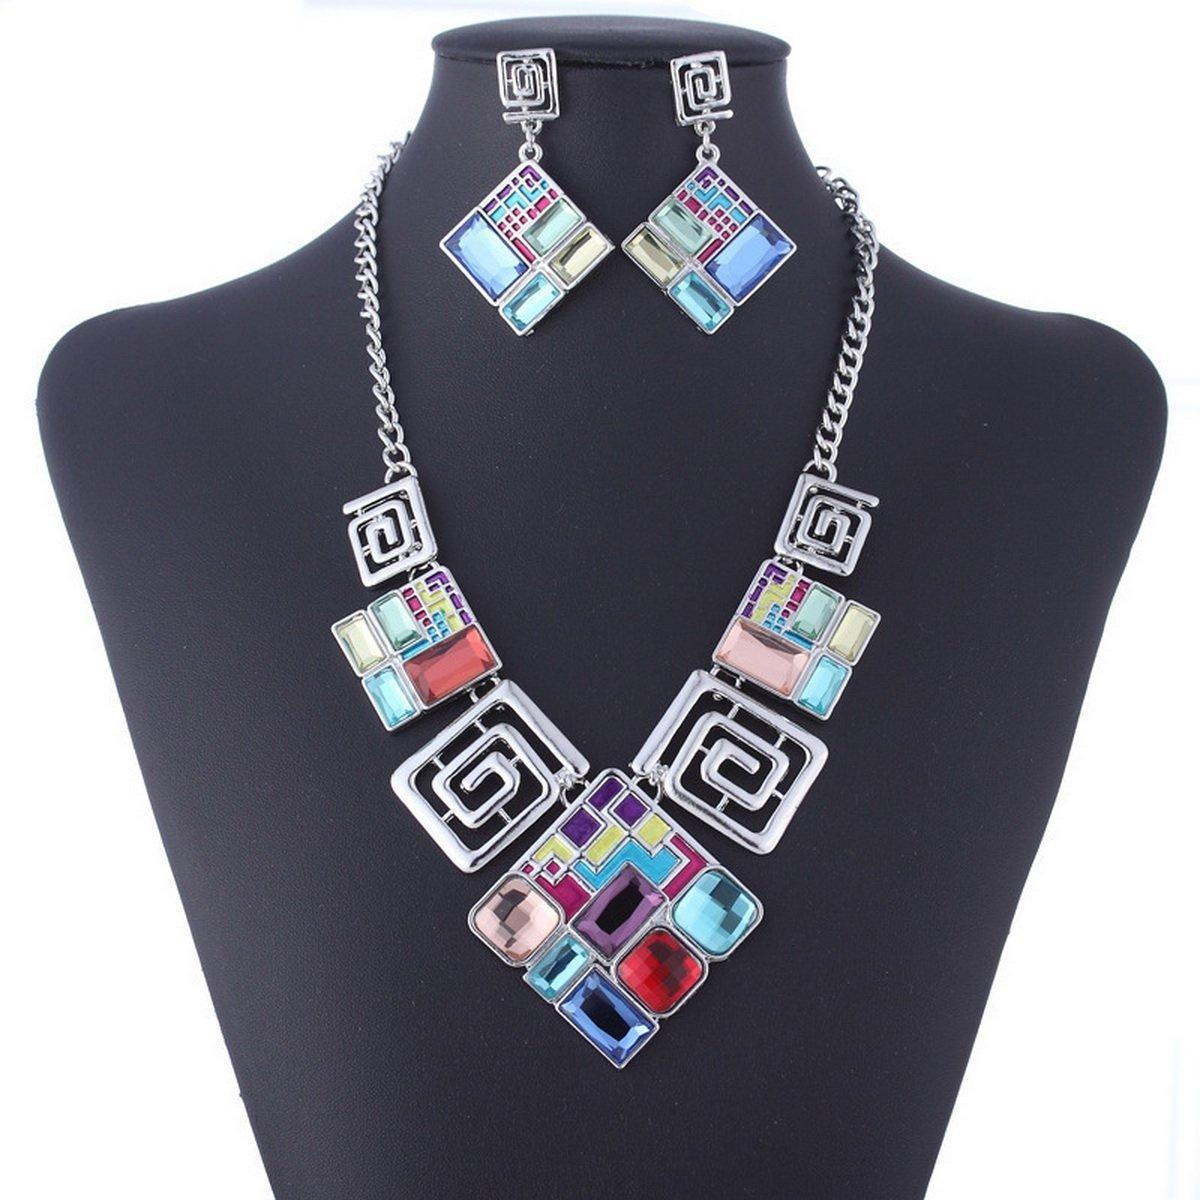 ARICO Geometric Jewelry Set Square Necklace Set Earrings Vintage Jewelry Sets NB146